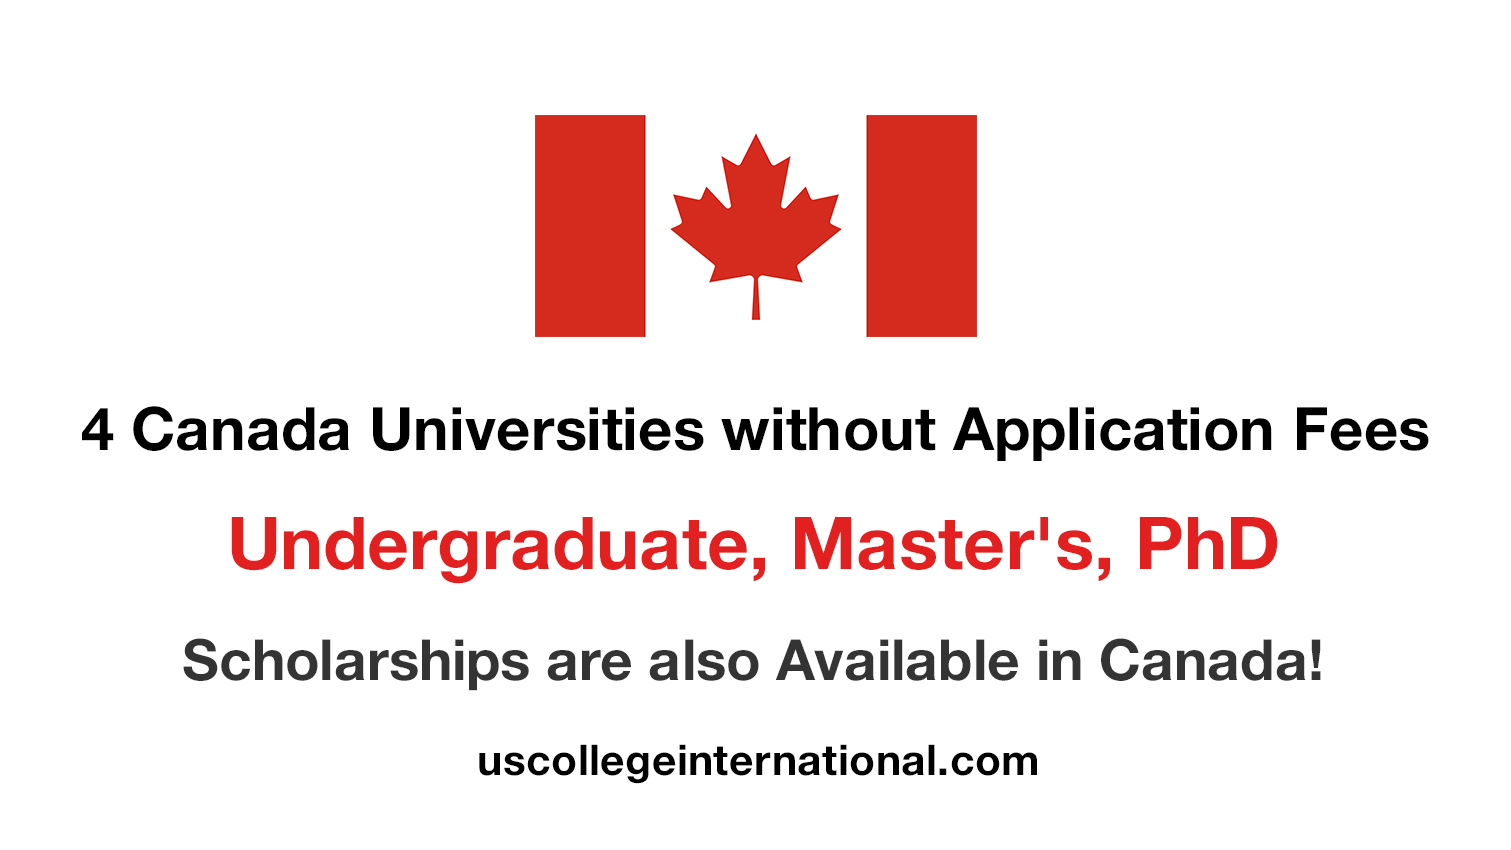 Canada Universities without Application Fees